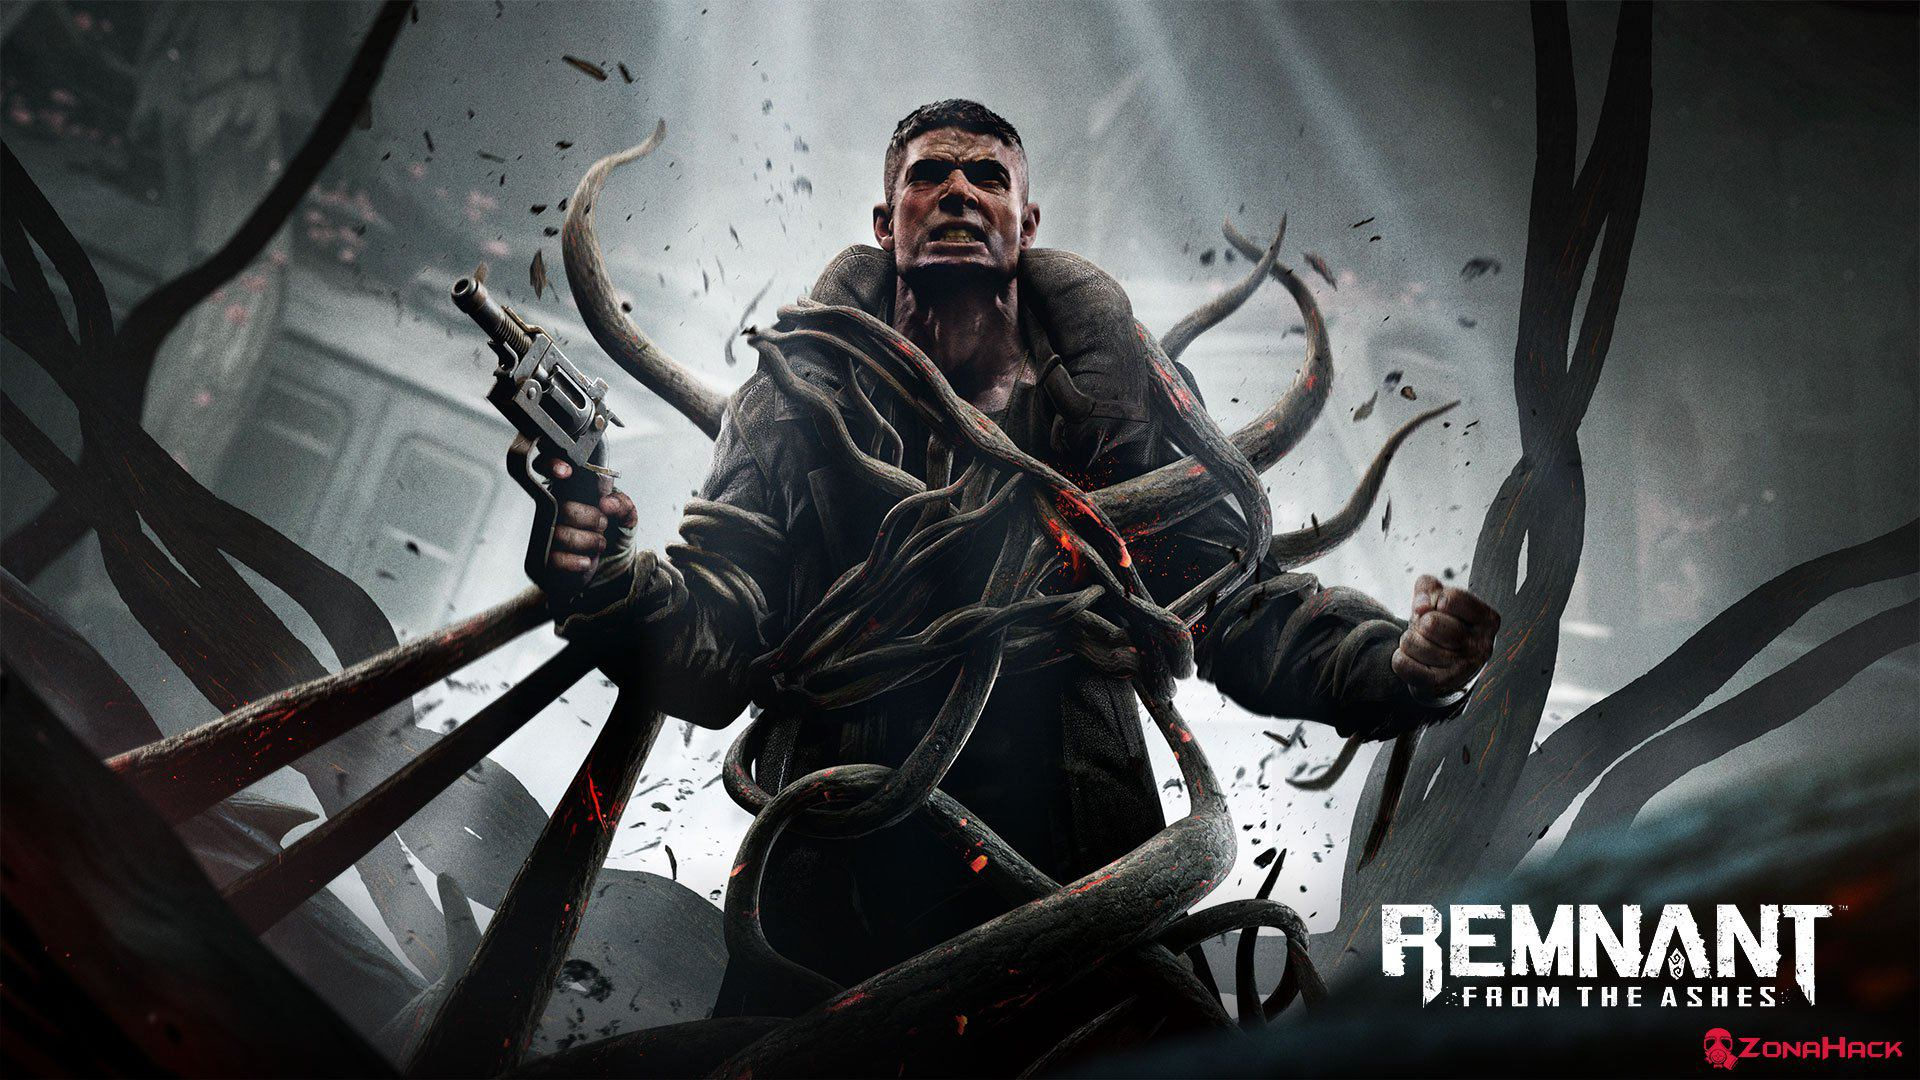 Трейнер к игре Remnant From the Ashes (+9) (+15) All Version (Steam) [214]